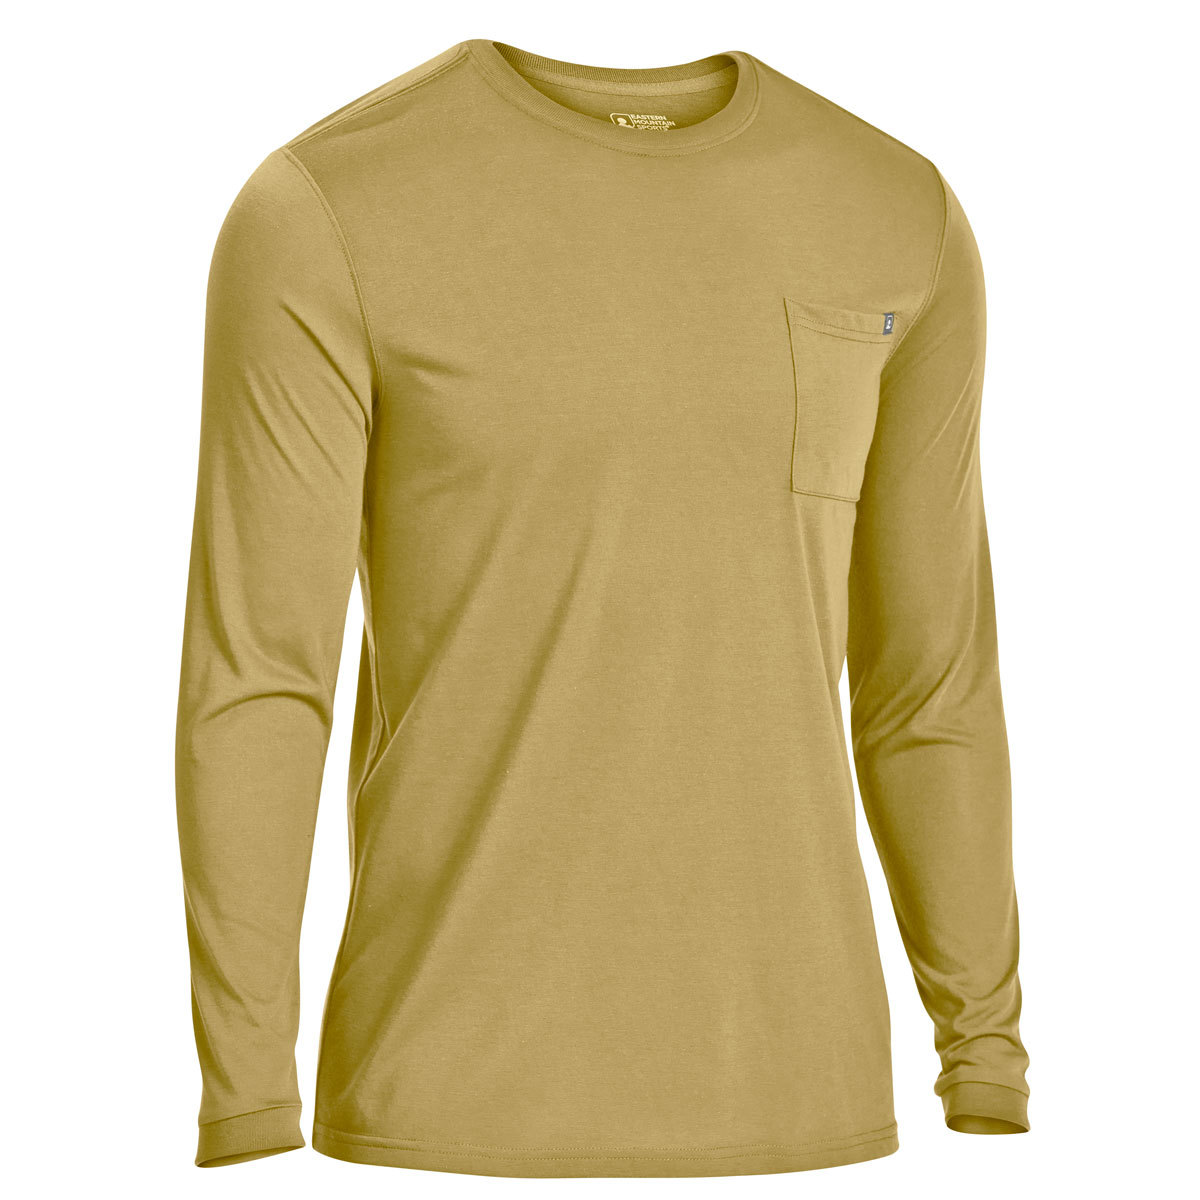 Ems Men's Techwick Vital Pocket Long-Sleeve Tee - Green, S